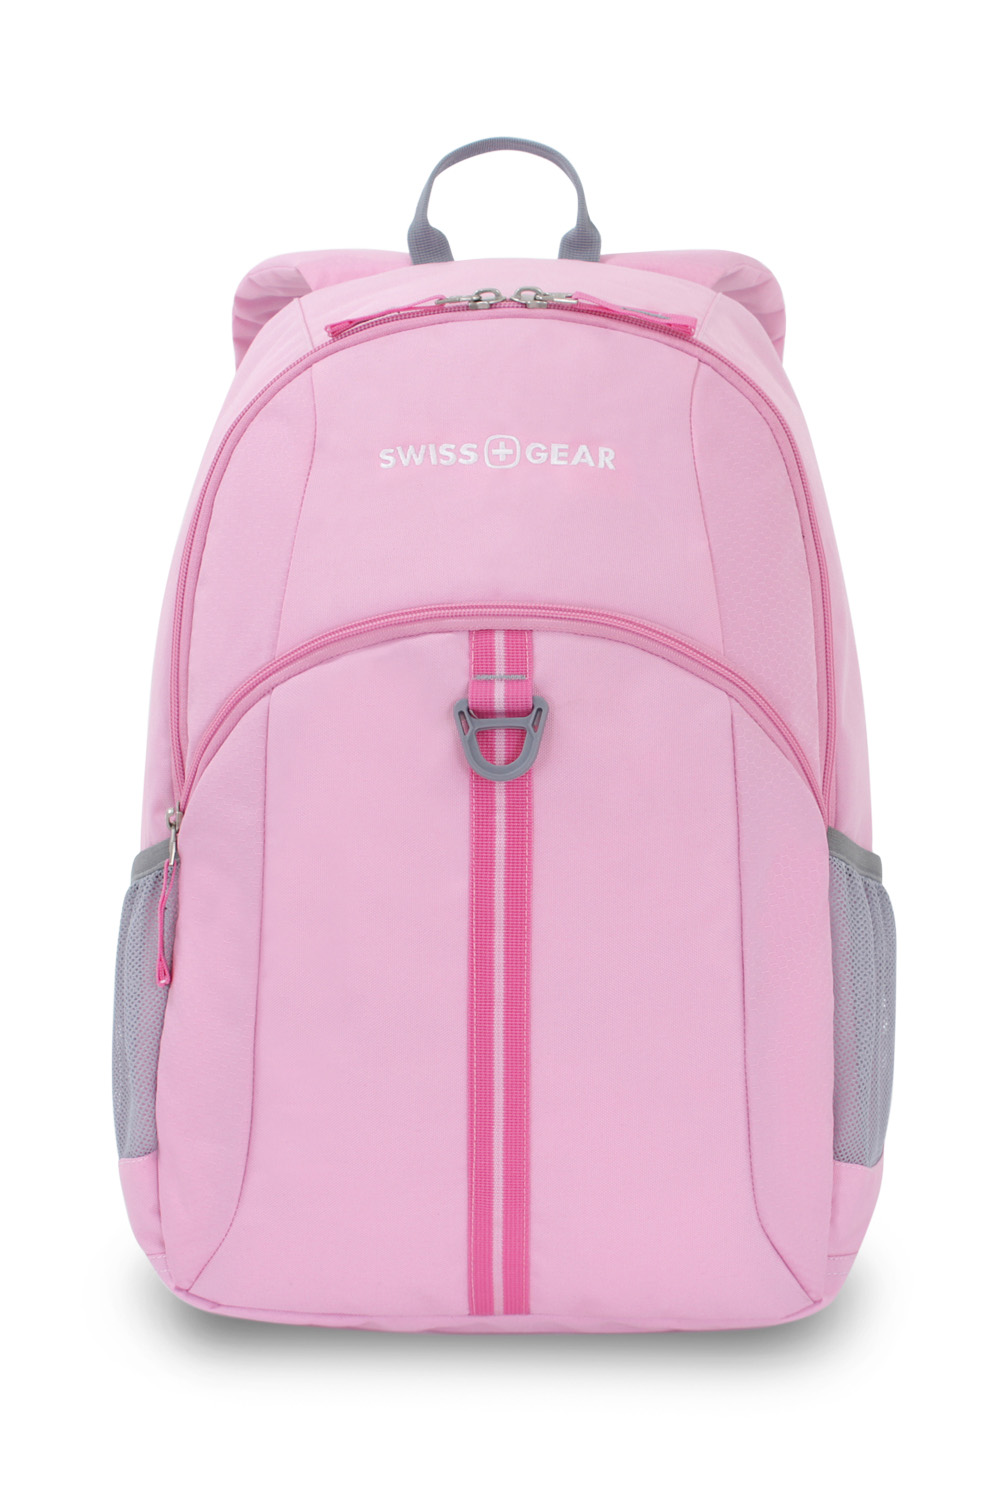 SWISSGEAR 6607 Backpack - Pink